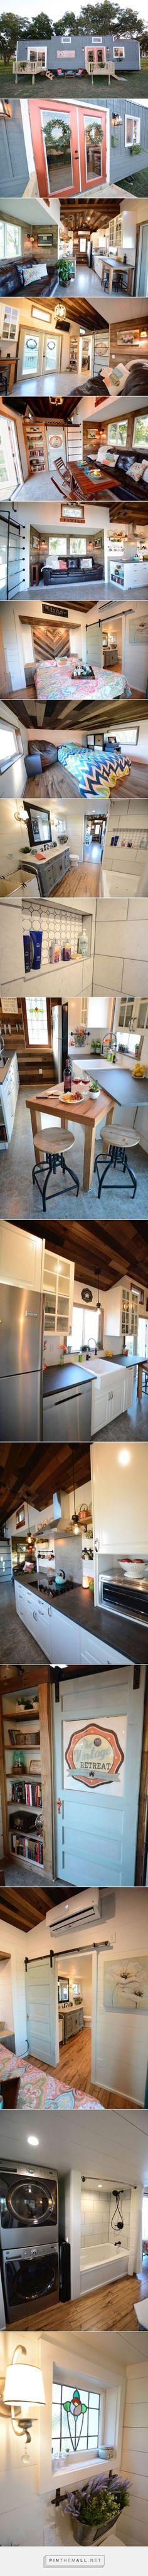 Vintage Retreat by Hill Country Tiny Houses - Tiny Living - created via https://pinthemall.net #CountryBathrooms